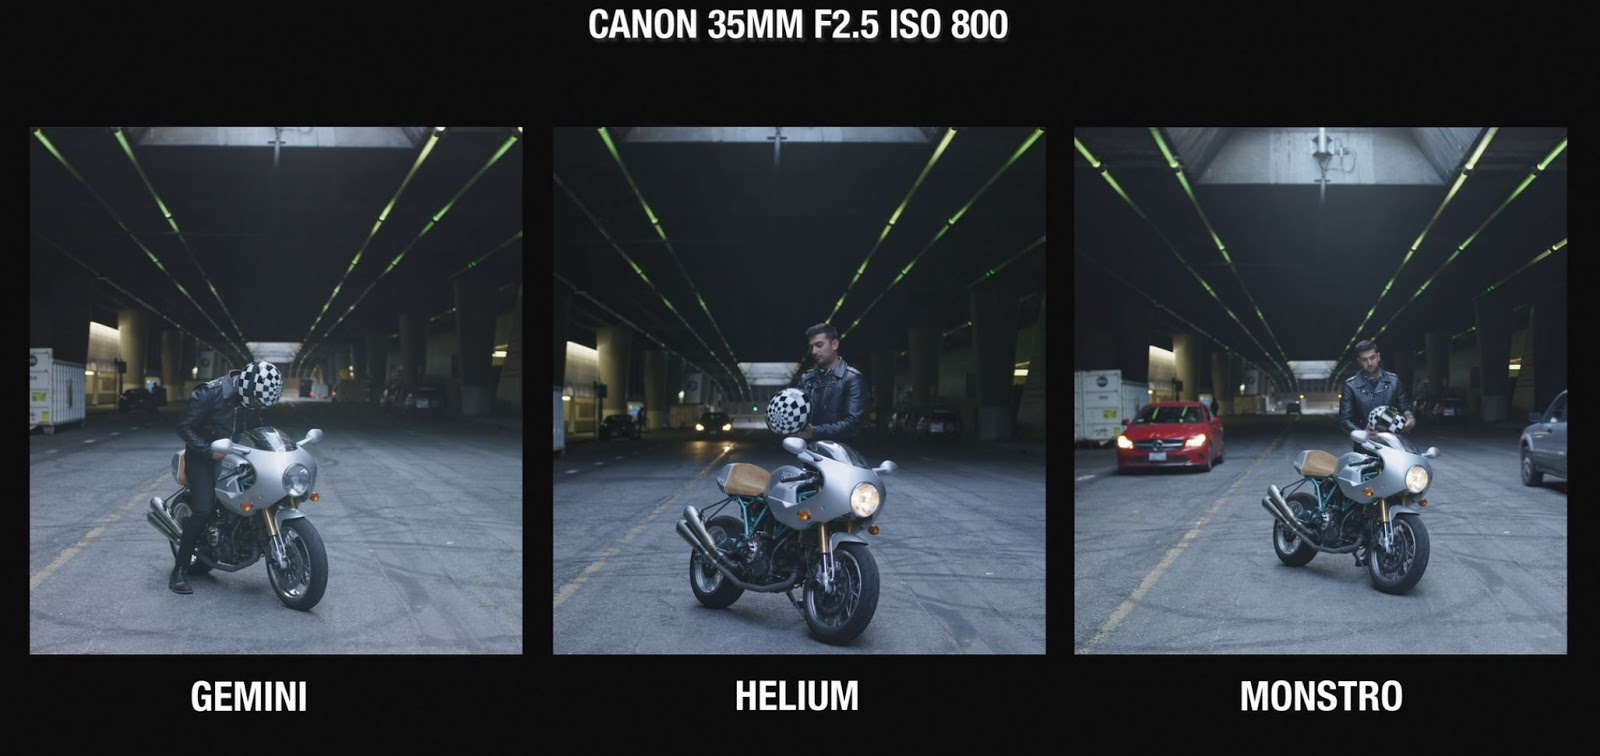 RED Gemini vs Monstro vs Helium side by side Test